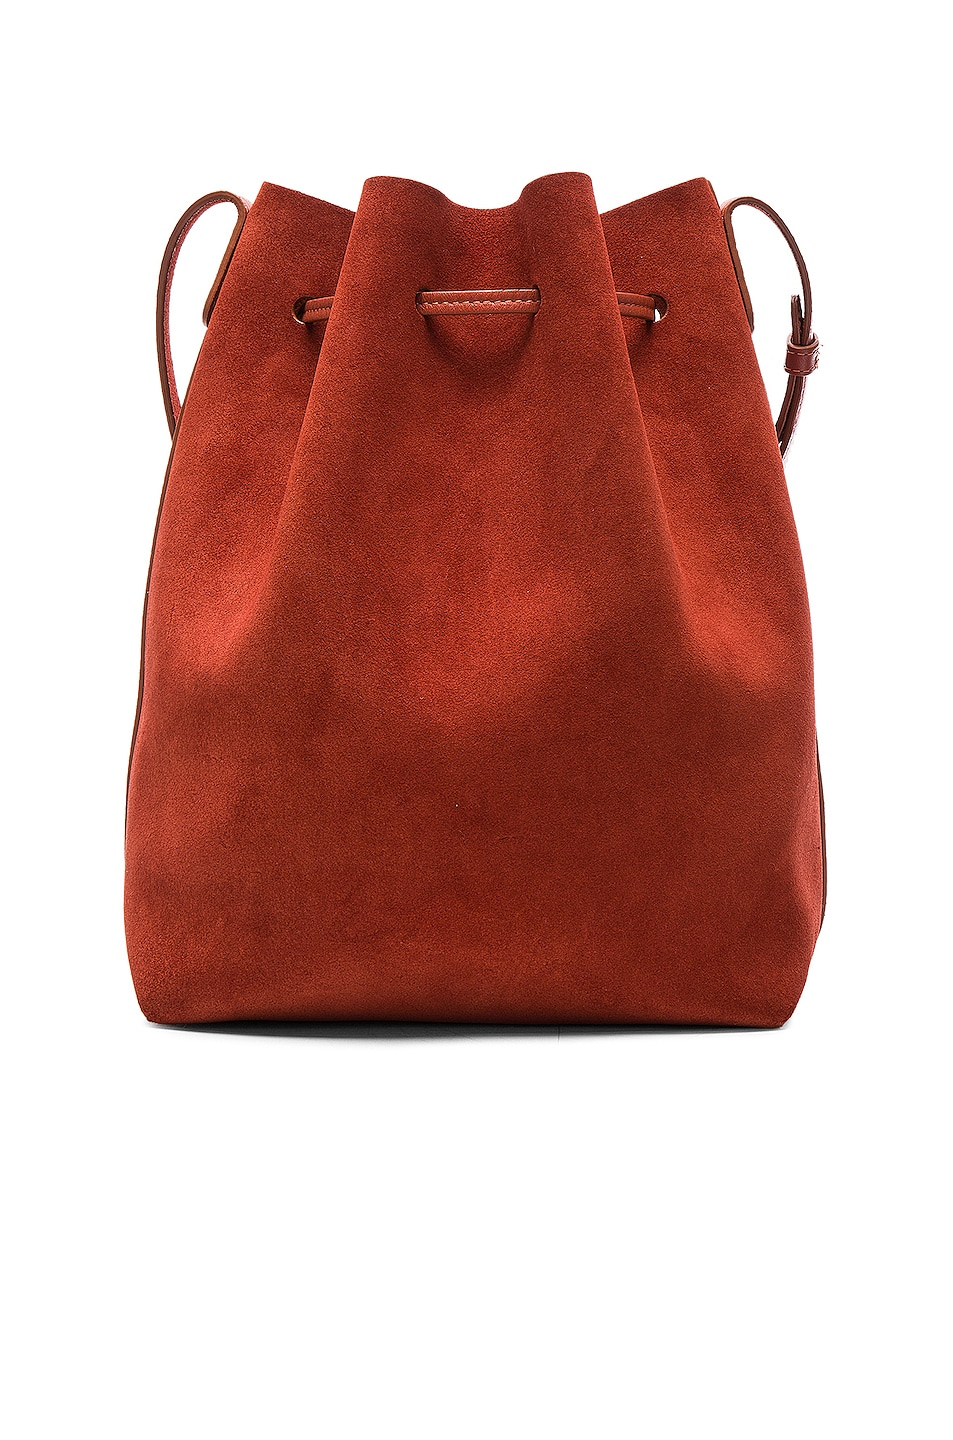 Image 3 of Mansur Gavriel Bucket Bag in Brick Suede